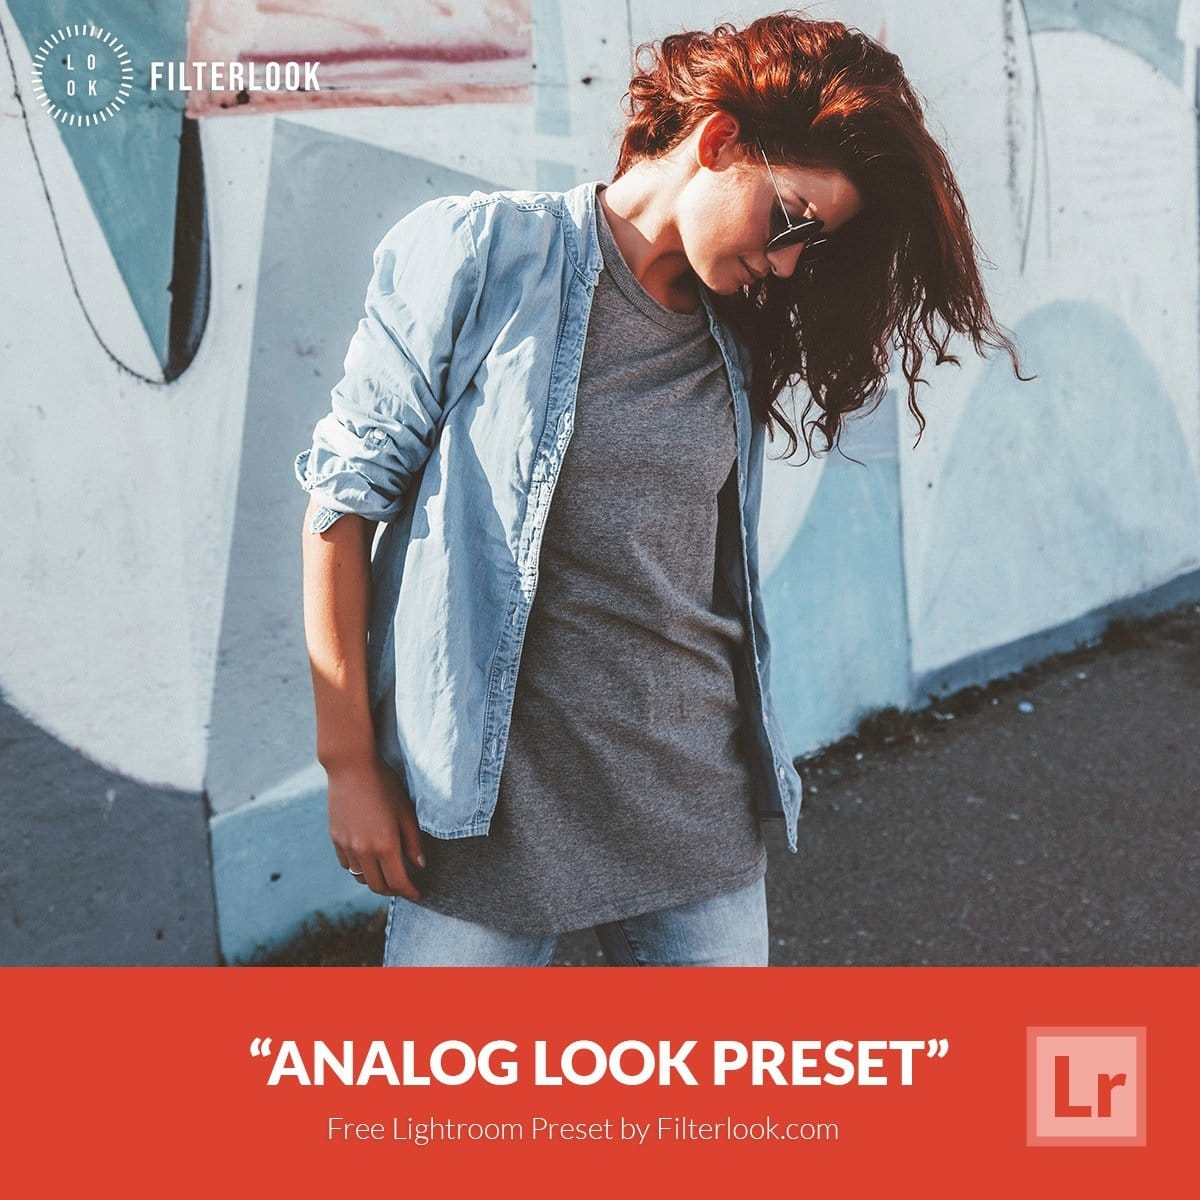 Free-Lightroom-Preset-Analog-Look-Filterlook.com